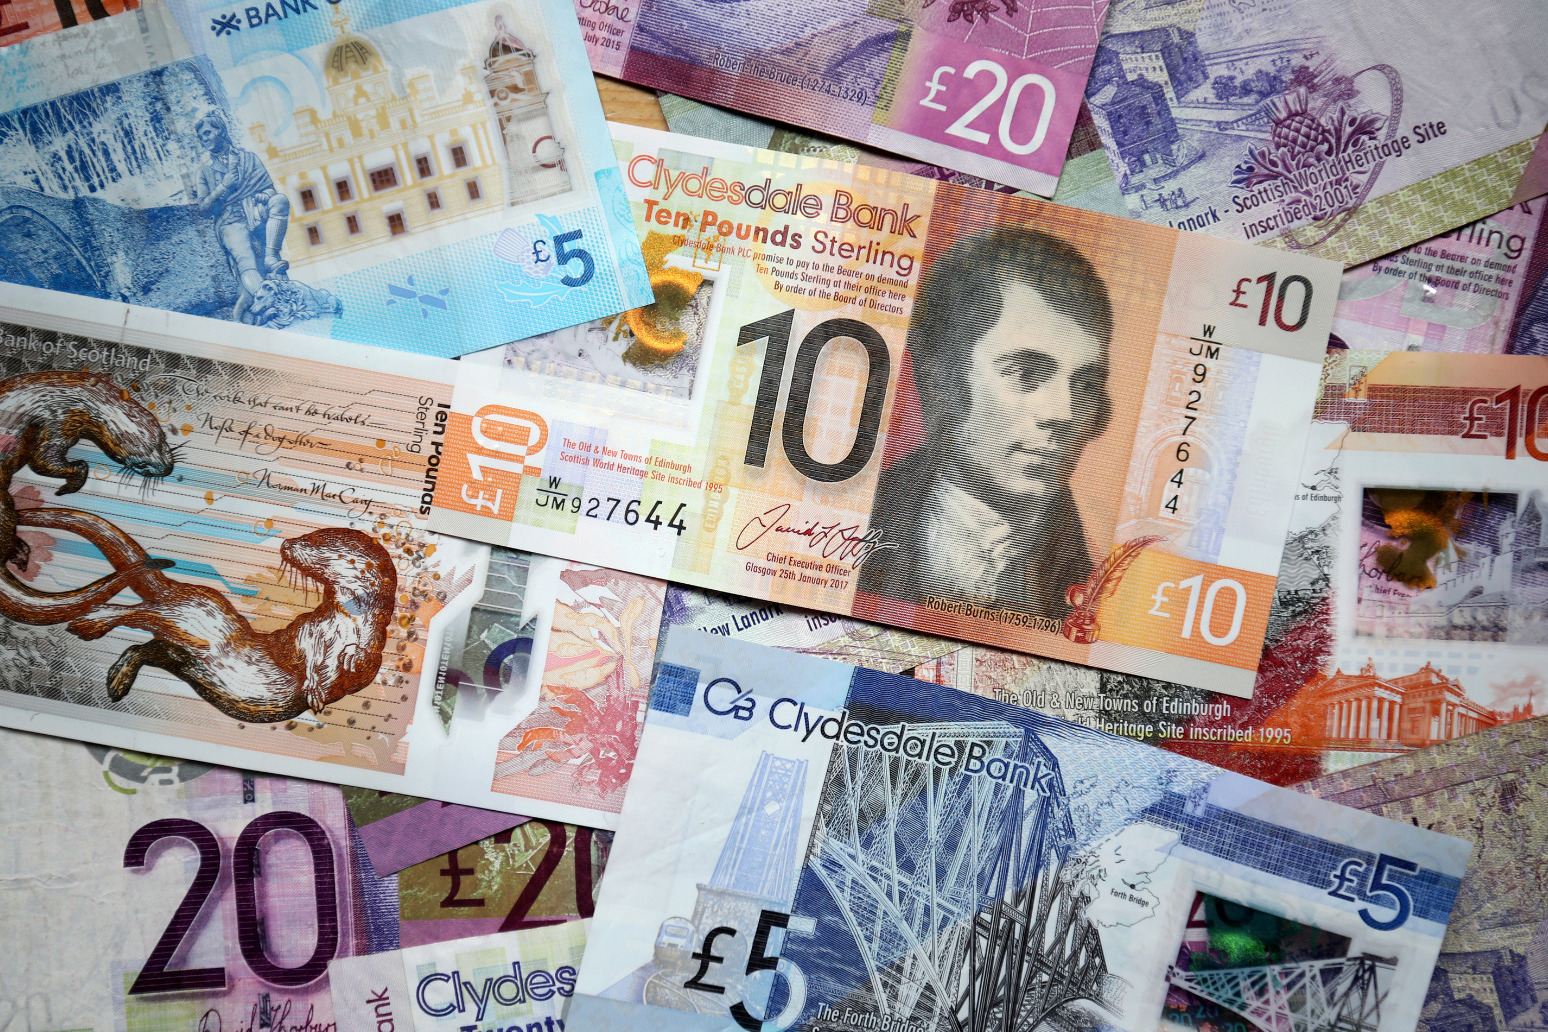 ECONOMIC RECOVERY IN SCOTLAND KICK-STARTED BY LIFTING OF COVID RESTRICTIONS